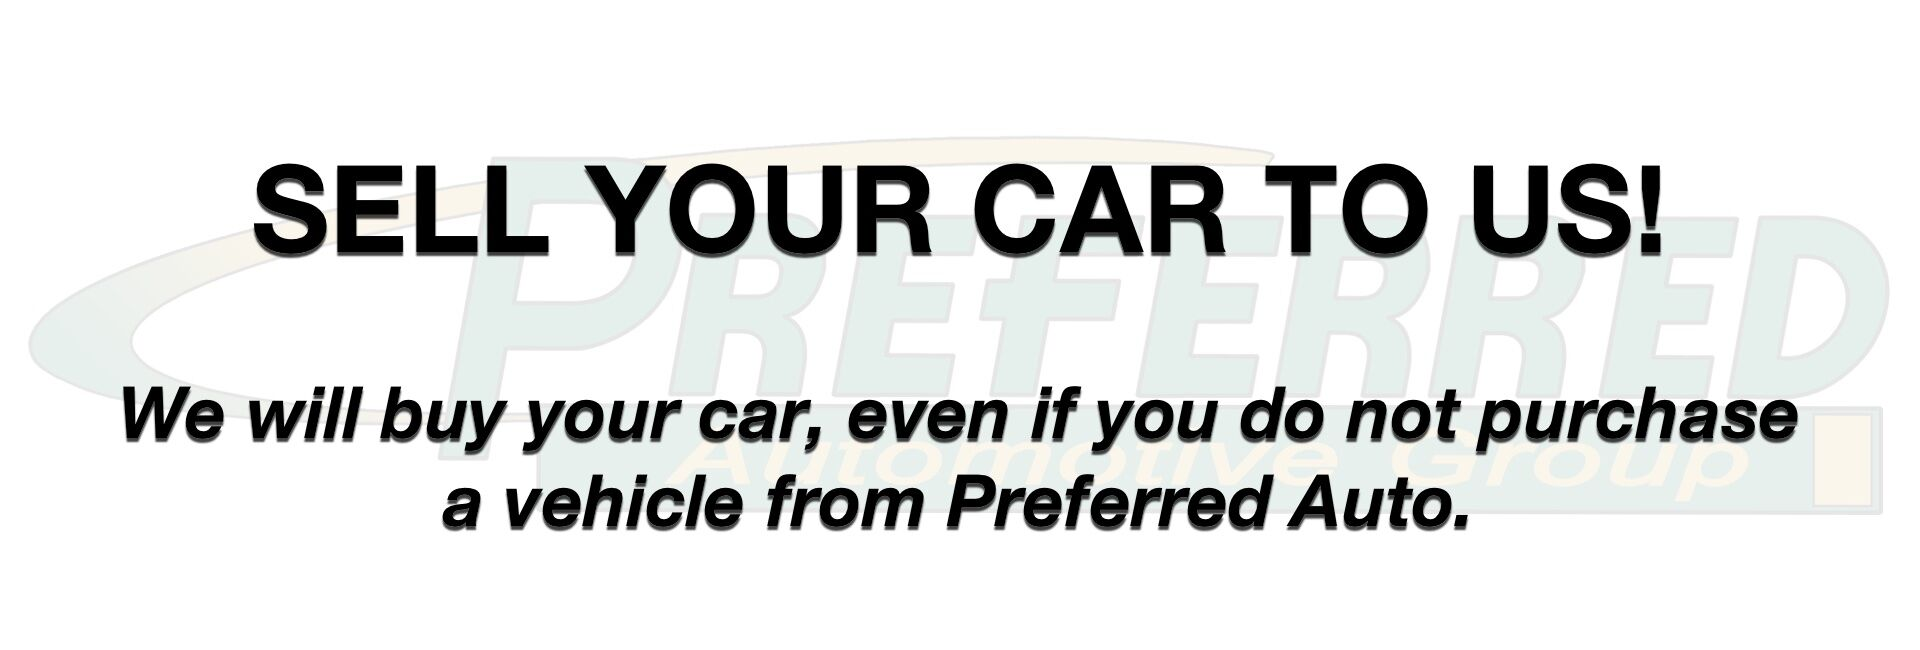 Sell your vehicle to Preferred Auto